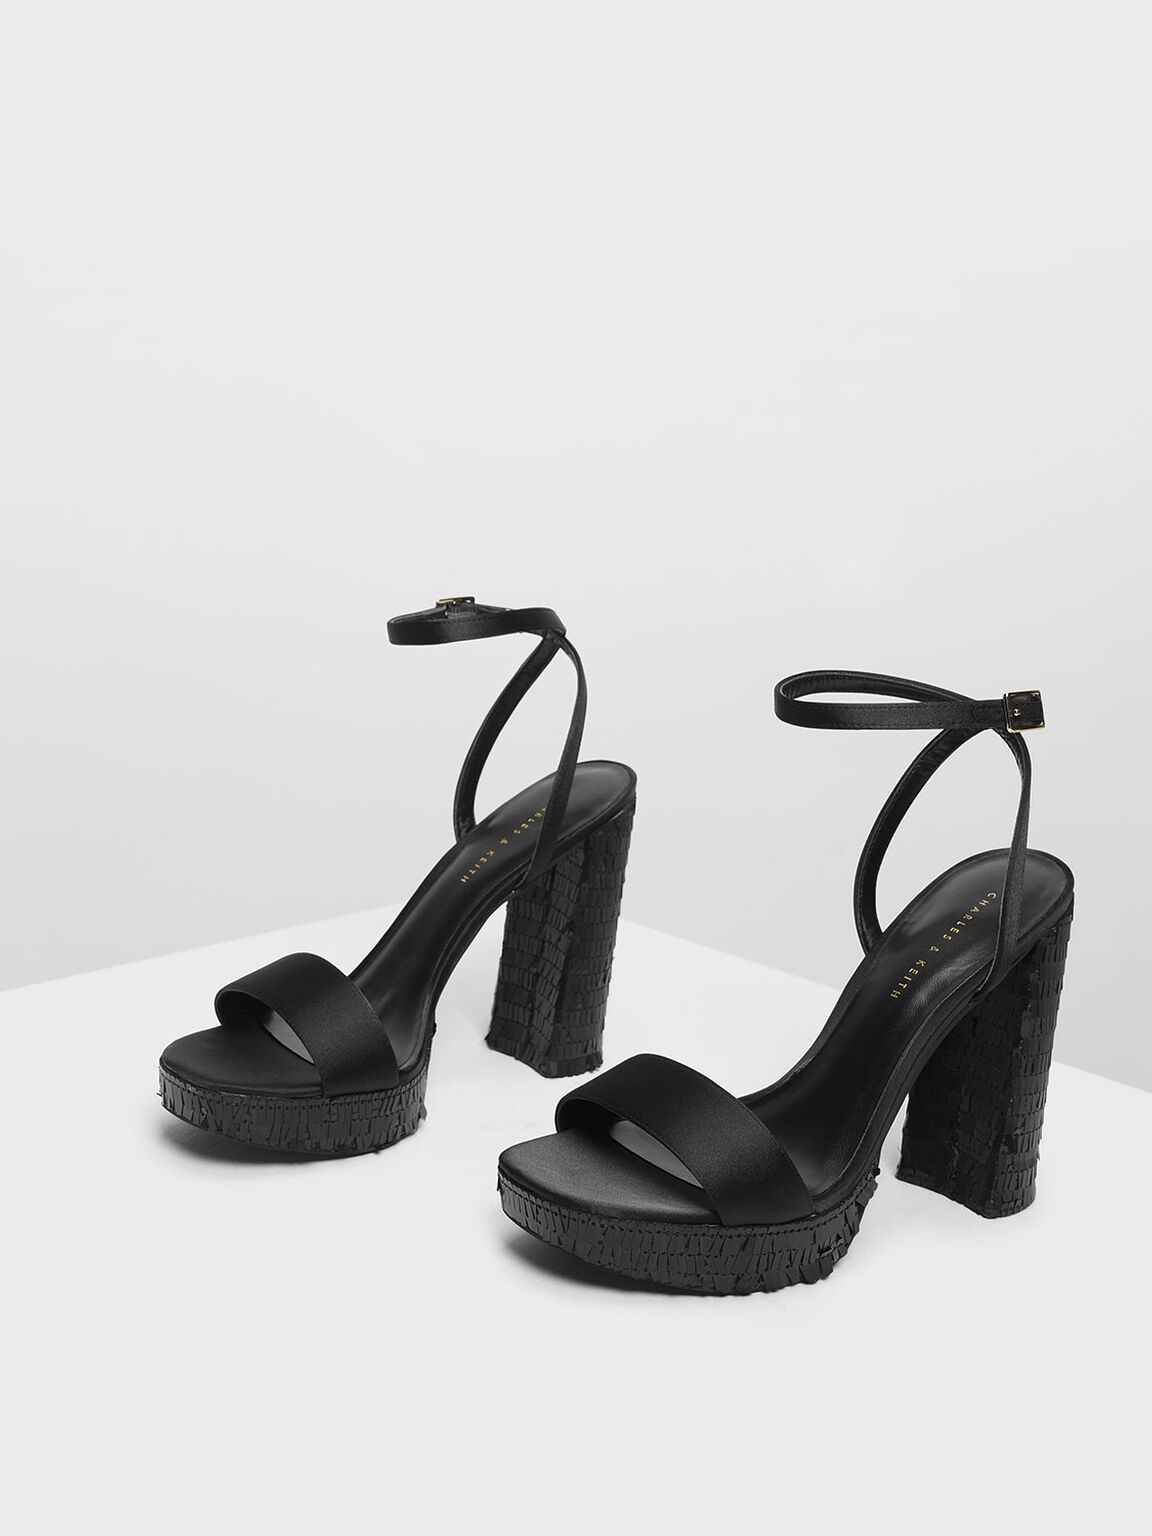 Sequin Platform Heeled Sandals, Black, hi-res